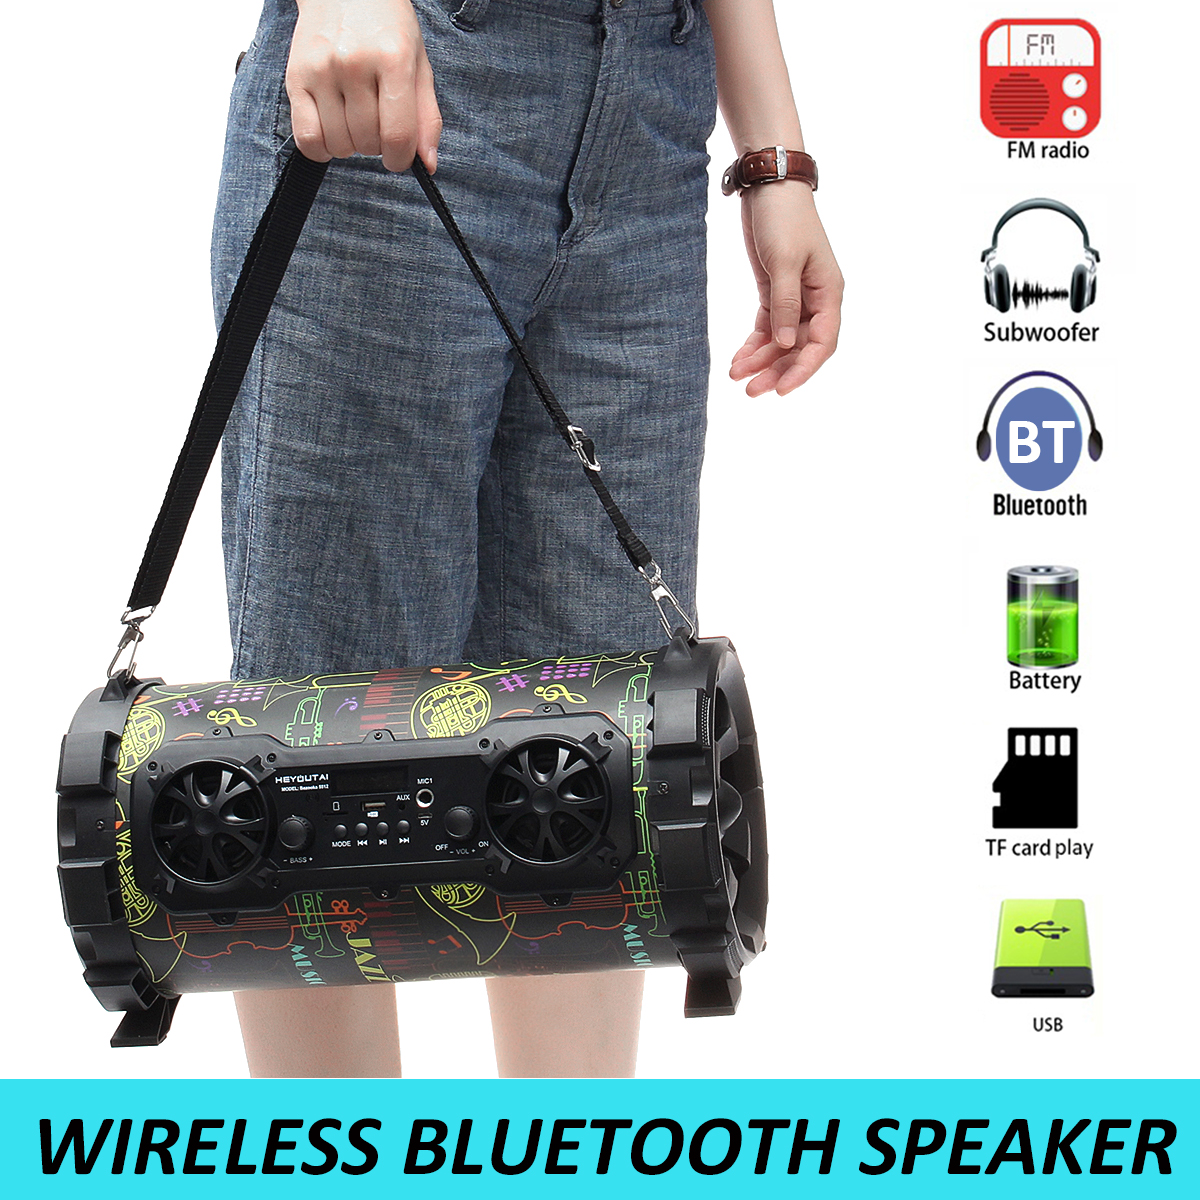 Portable Outdoor Speaker 25W Wireless Bluetooth V4.1 Speaker Loudspeaker Sound System AUX/USB/TF Card/Radio FM Player Music 4 2 bluetooth speaker hi fi portable wireless box mp3 music player receiver audio fm radio with usb aux tf card boombox column